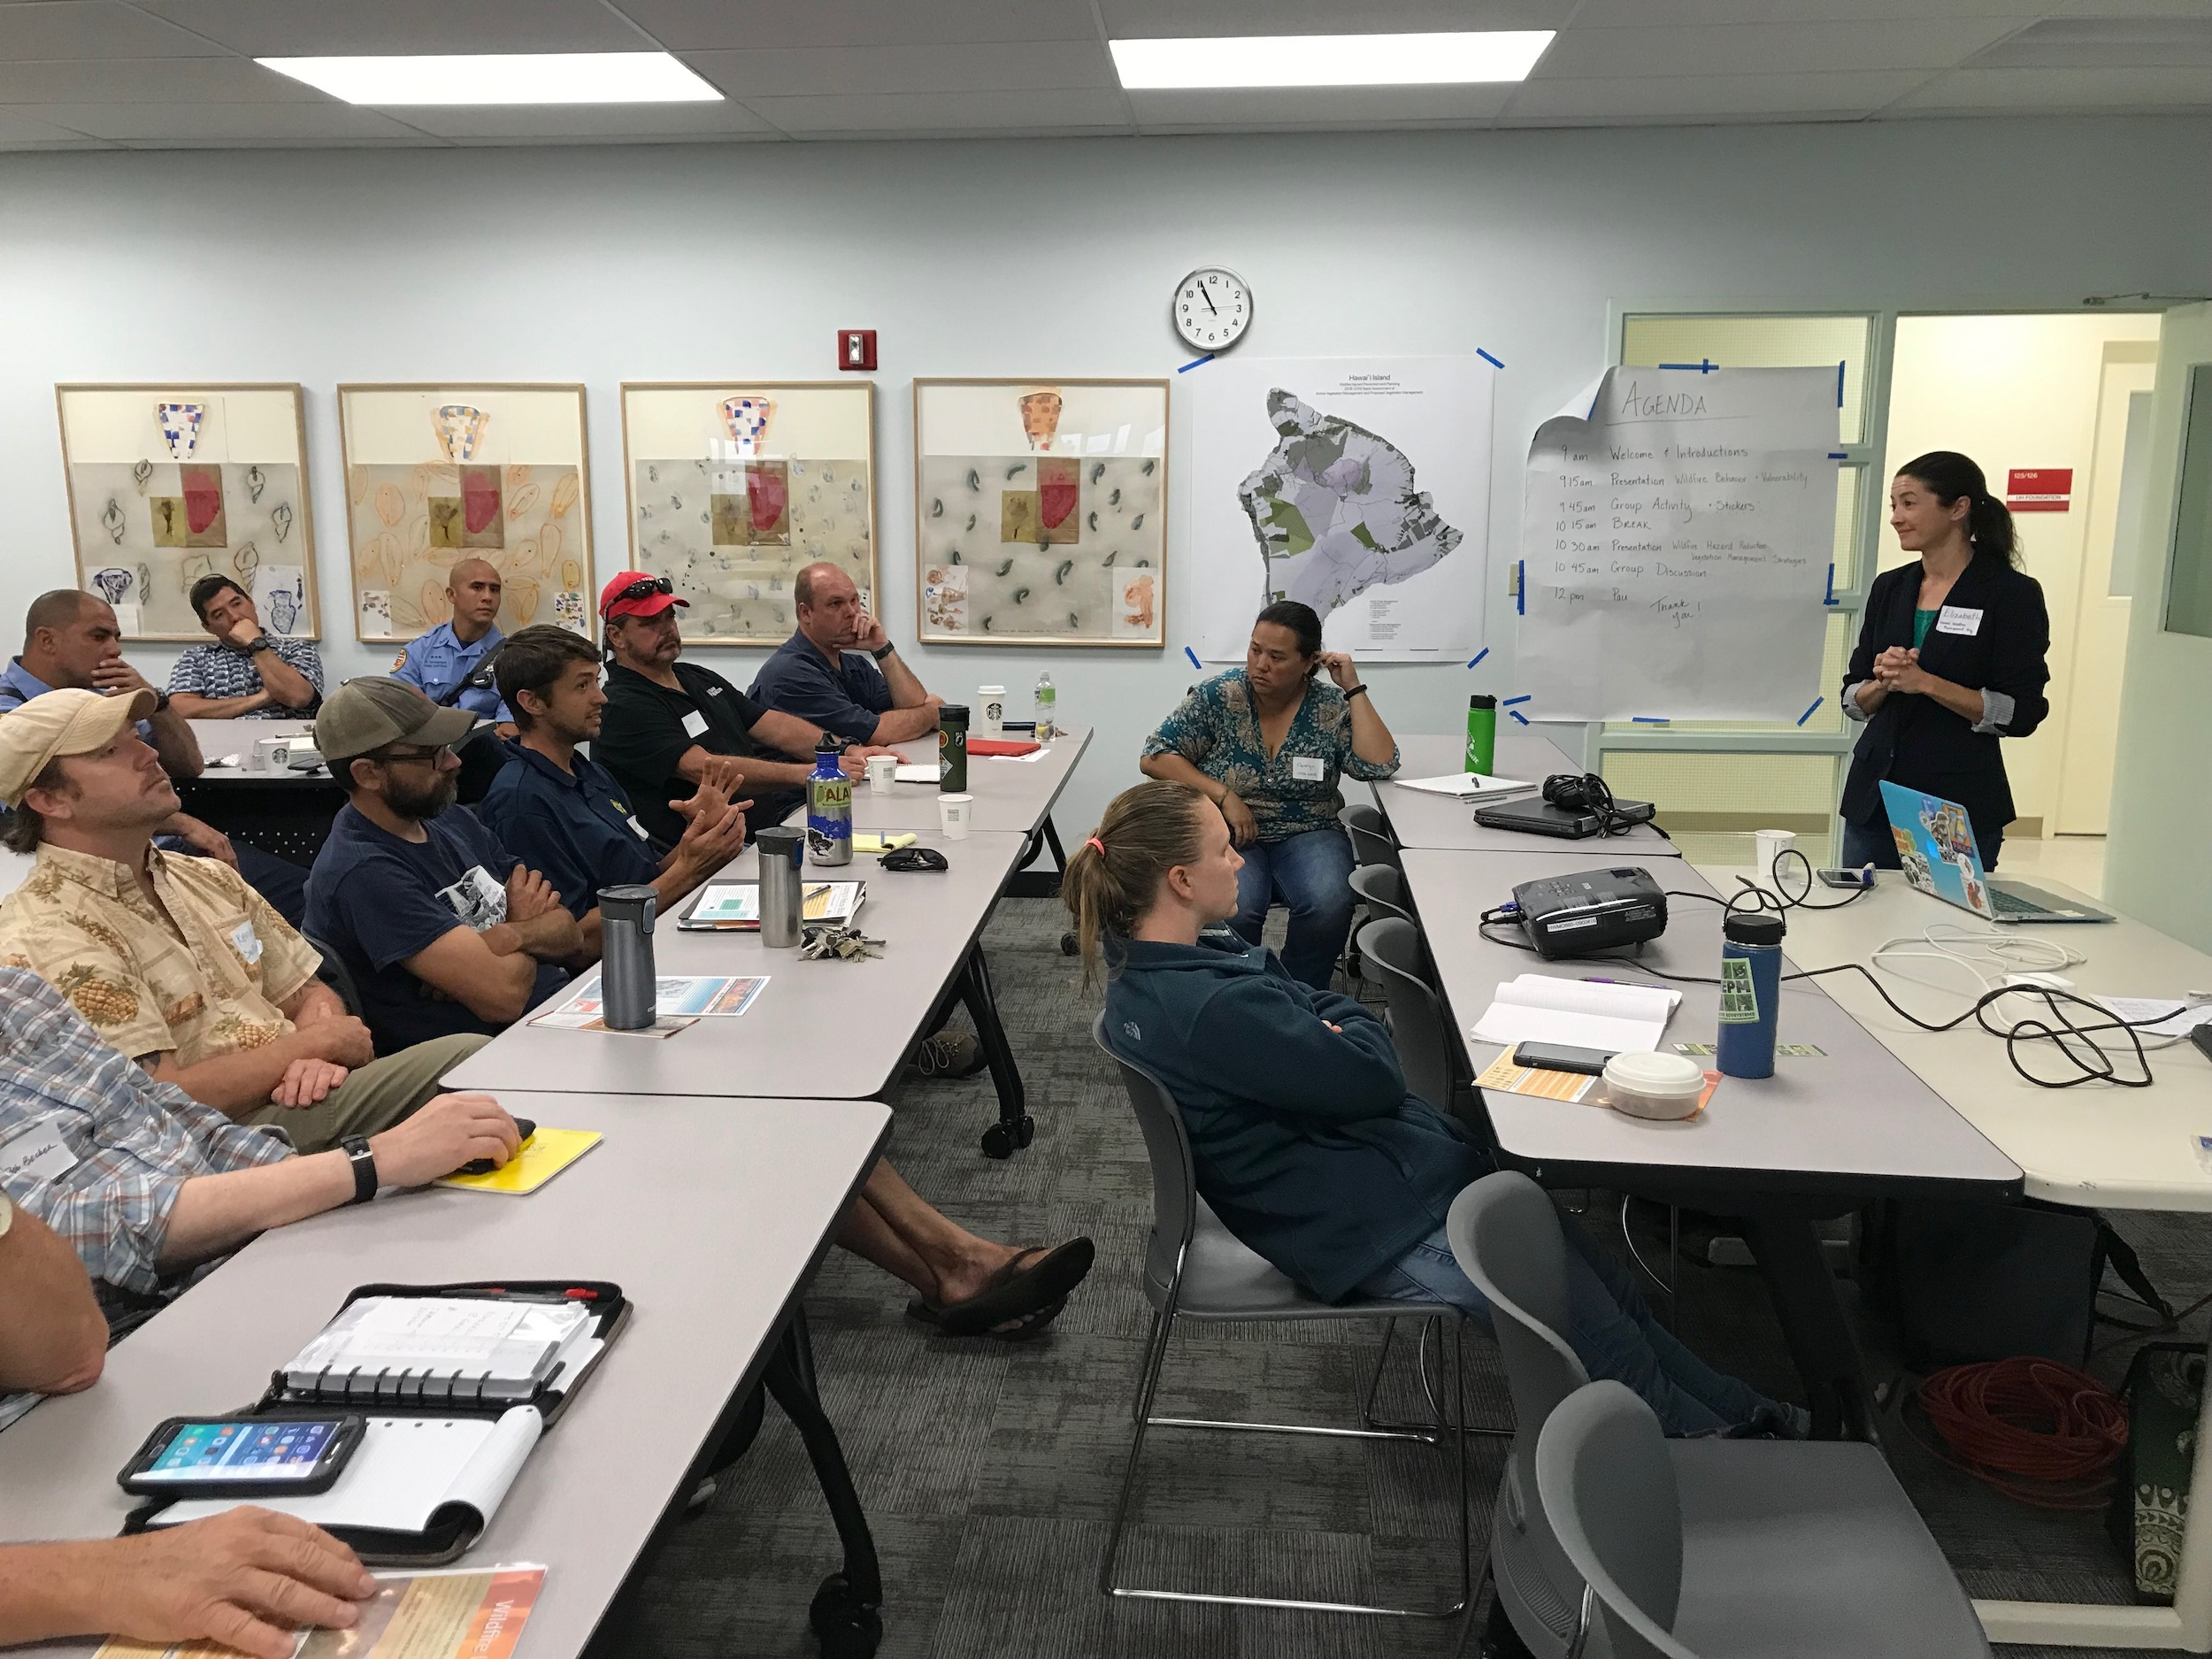 Hawaii Island Hilo Vegetative Fuels Management Collaborative Action Planning Workshop_2_22_2019_26.jpg